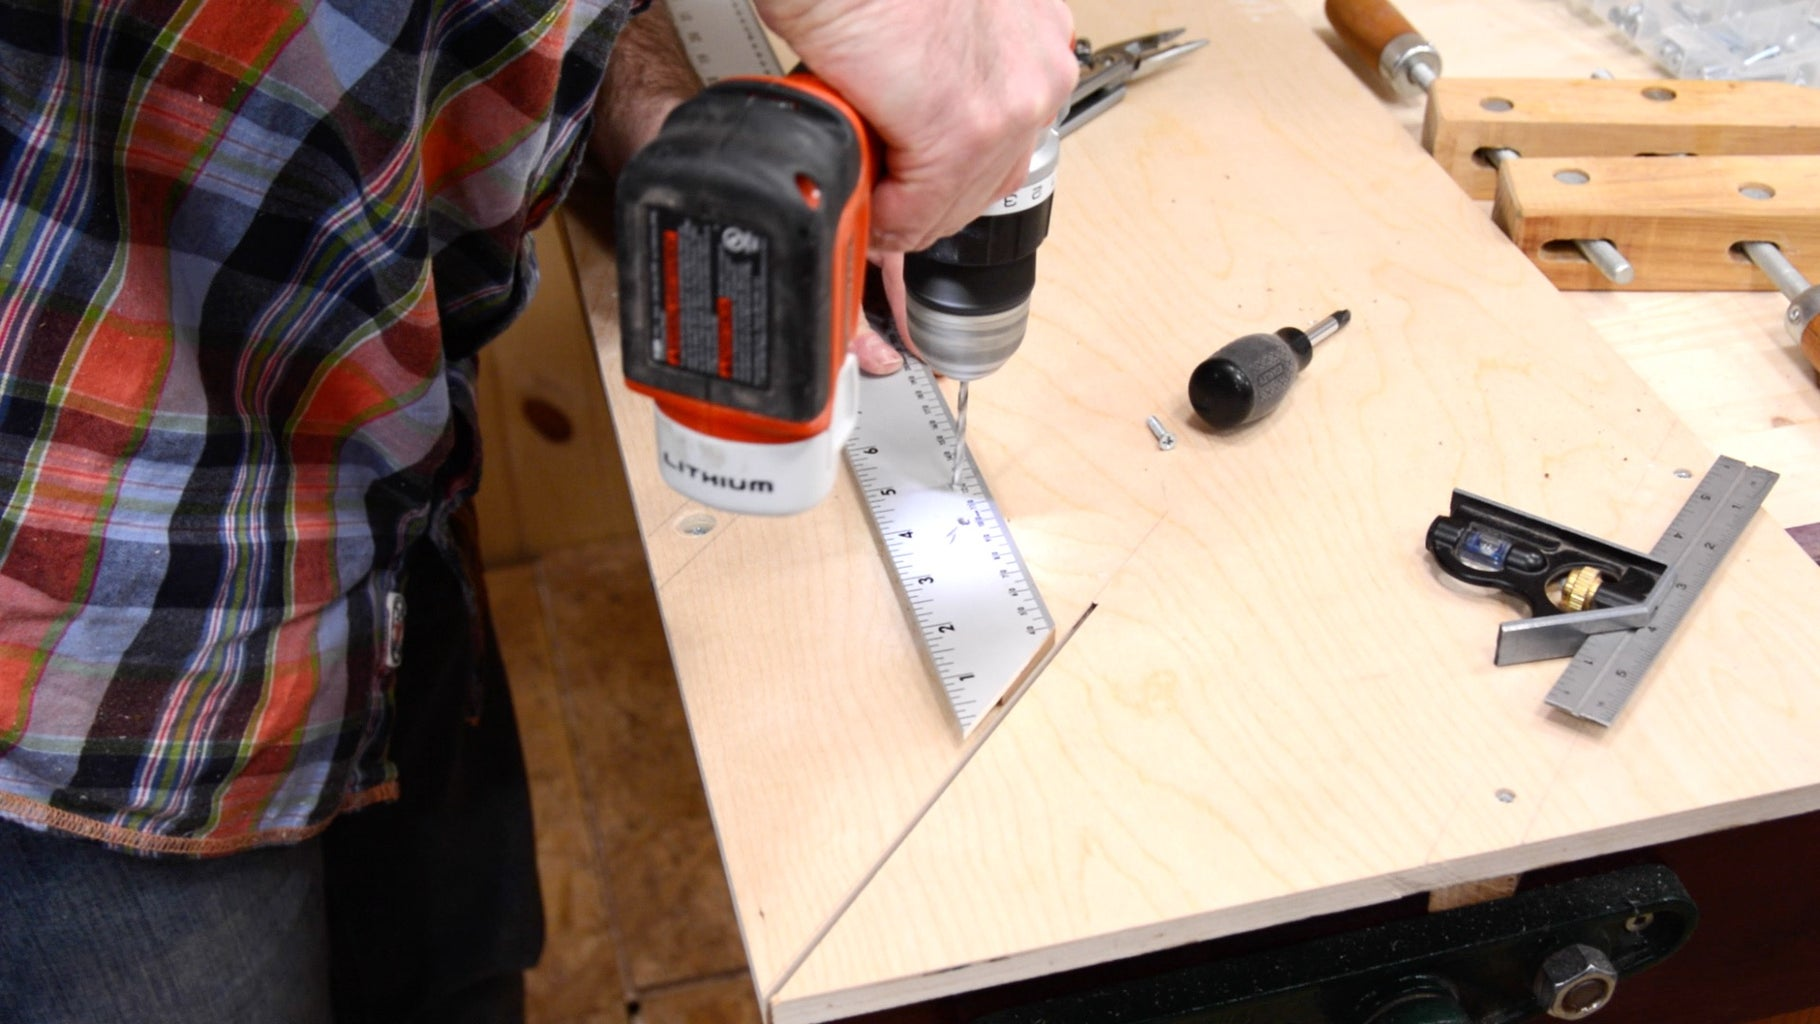 Step 13: Attach Ruler to Base